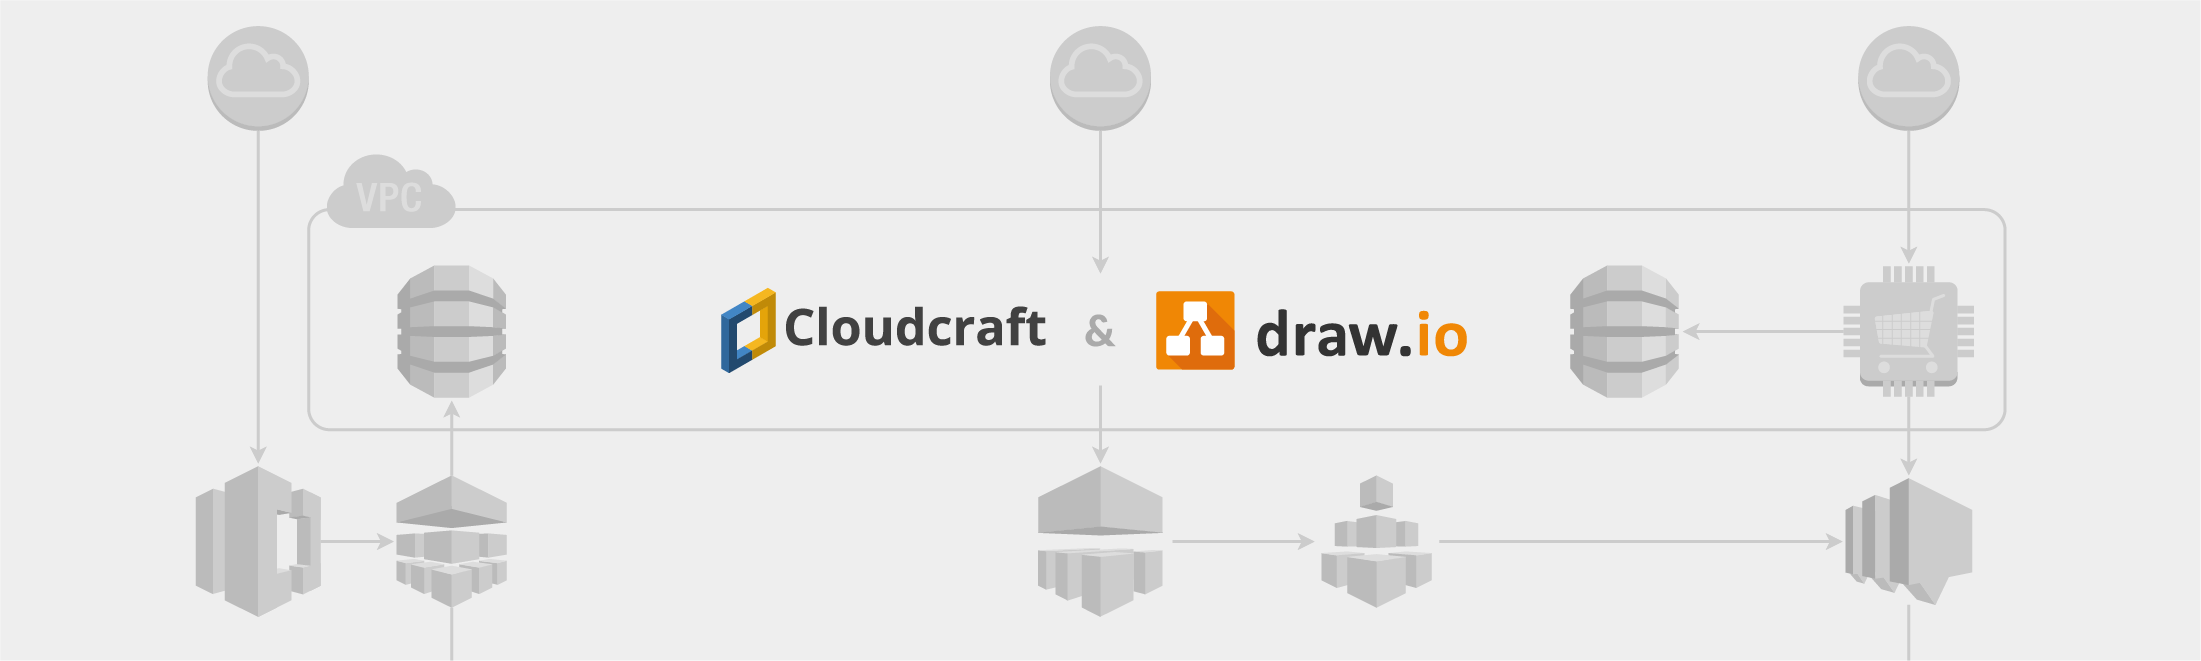 Document Your Aws Architecture With Cloudcraft And Draw Io Draw Io